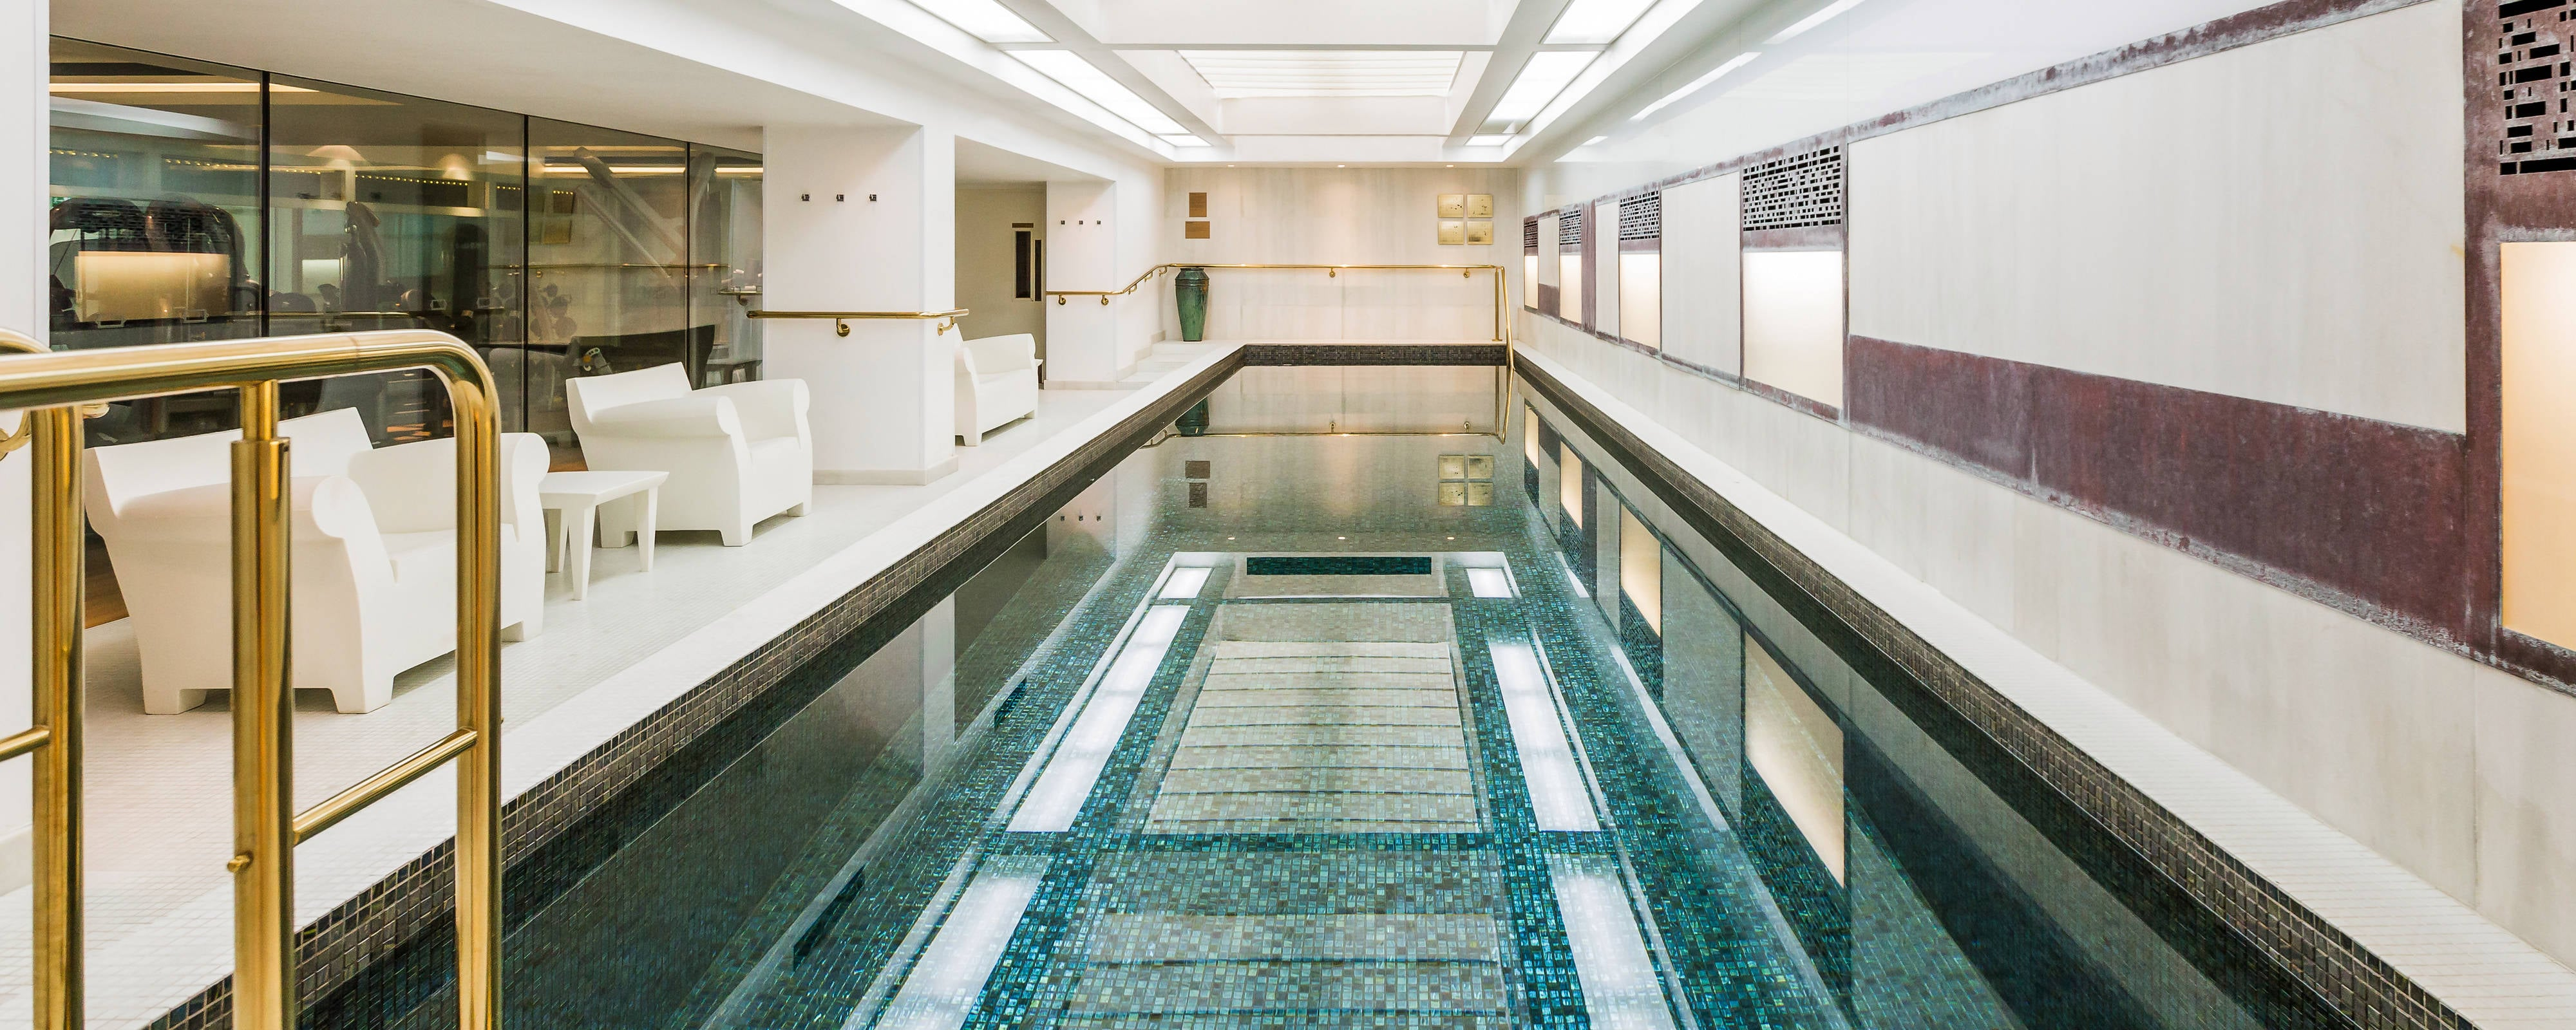 Hotel Gym & Recreation | Town Hall Hotel & Apartments ...